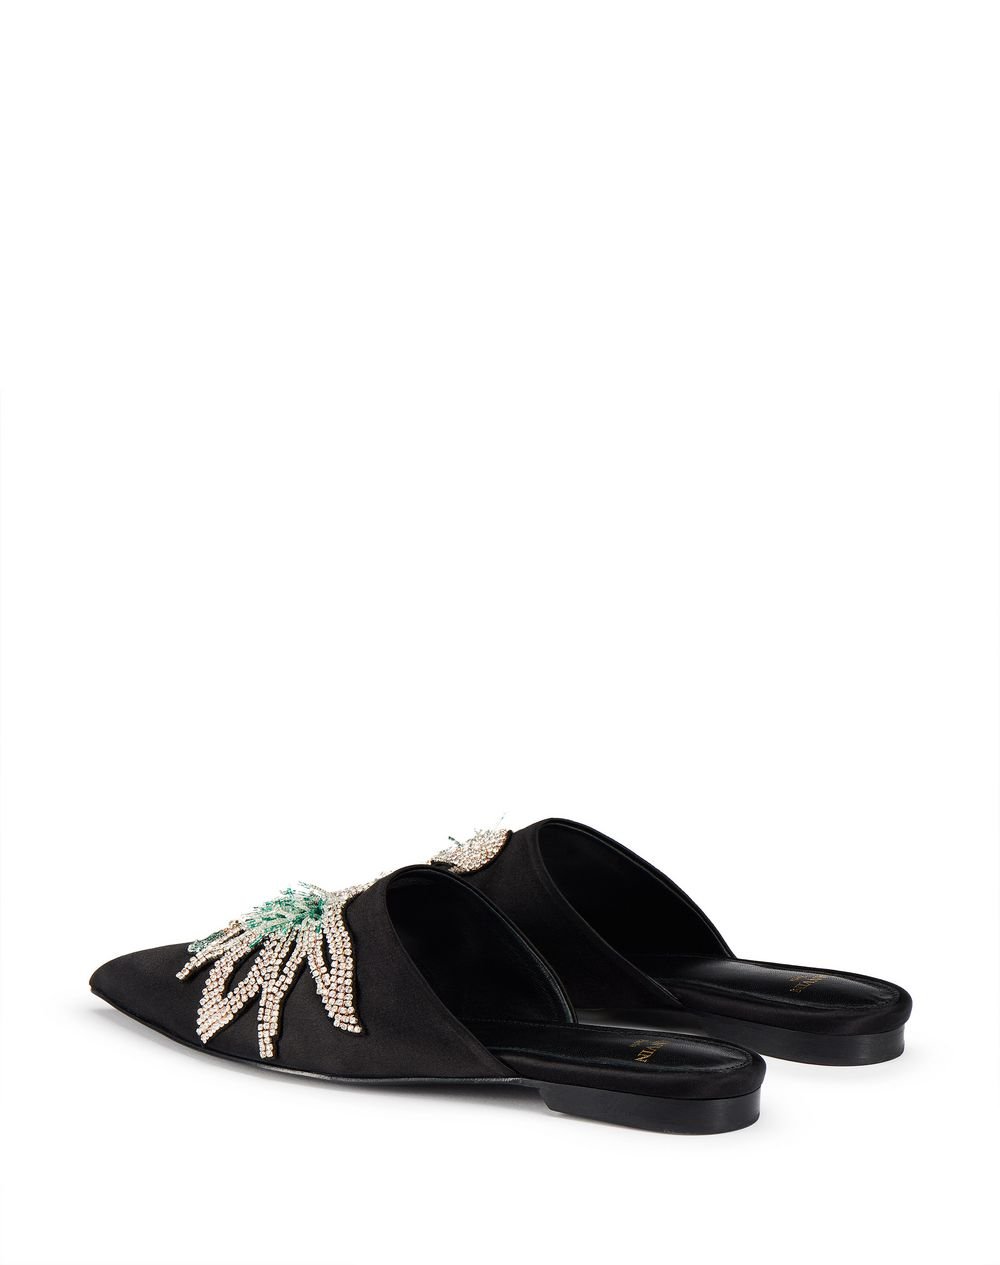 EMBROIDERED SATIN MULE - Lanvin